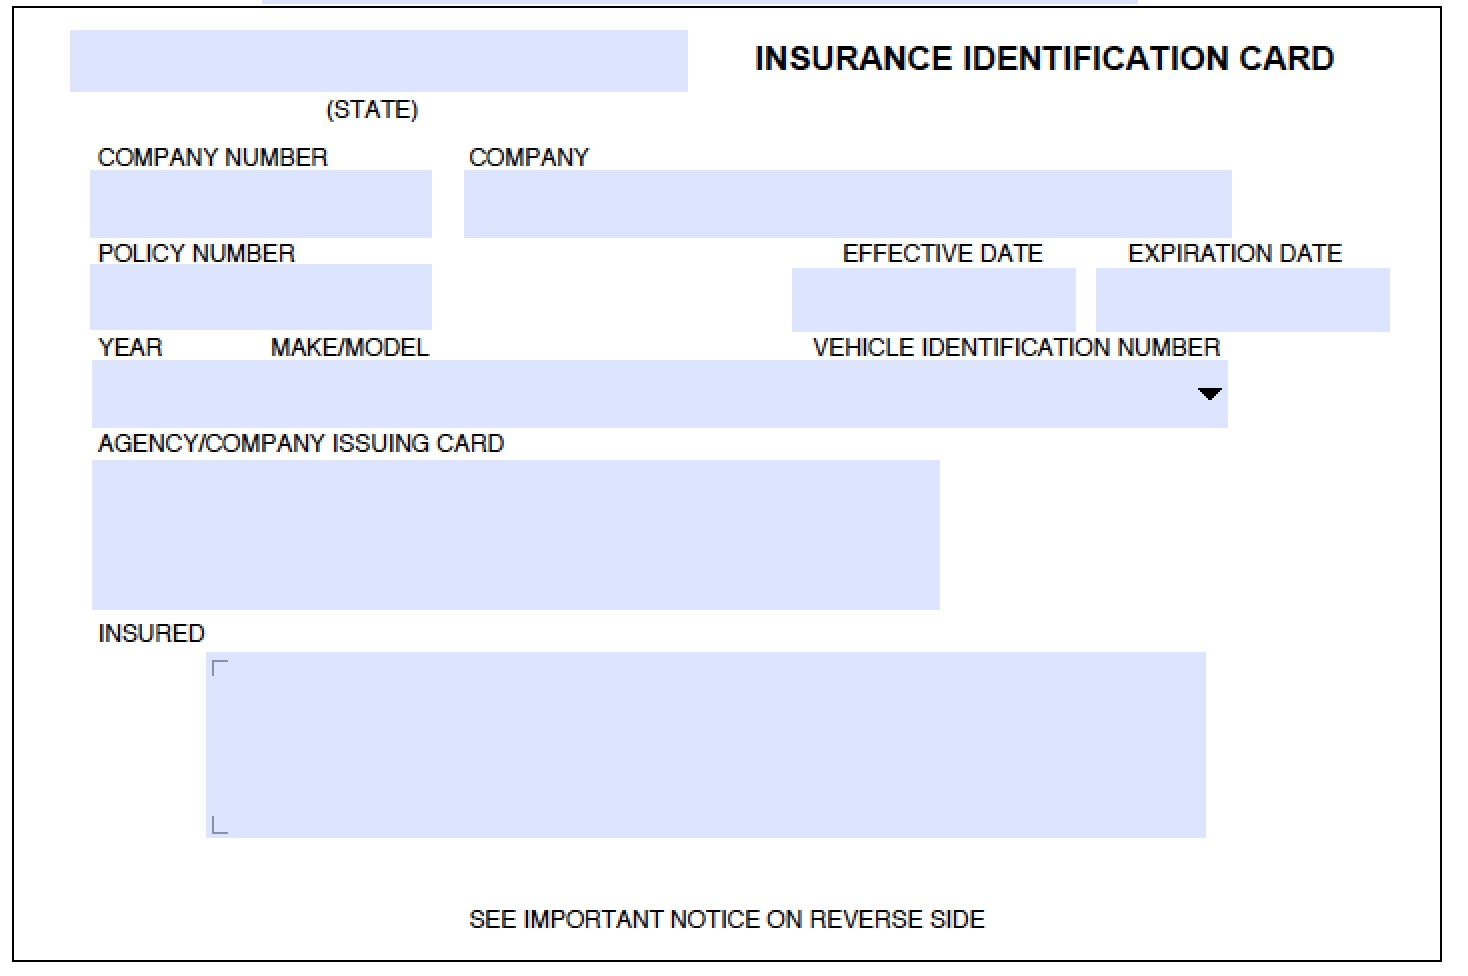 fake geico insurance card template  | Fake Geico Insurance Card Template - stoatmusic.com